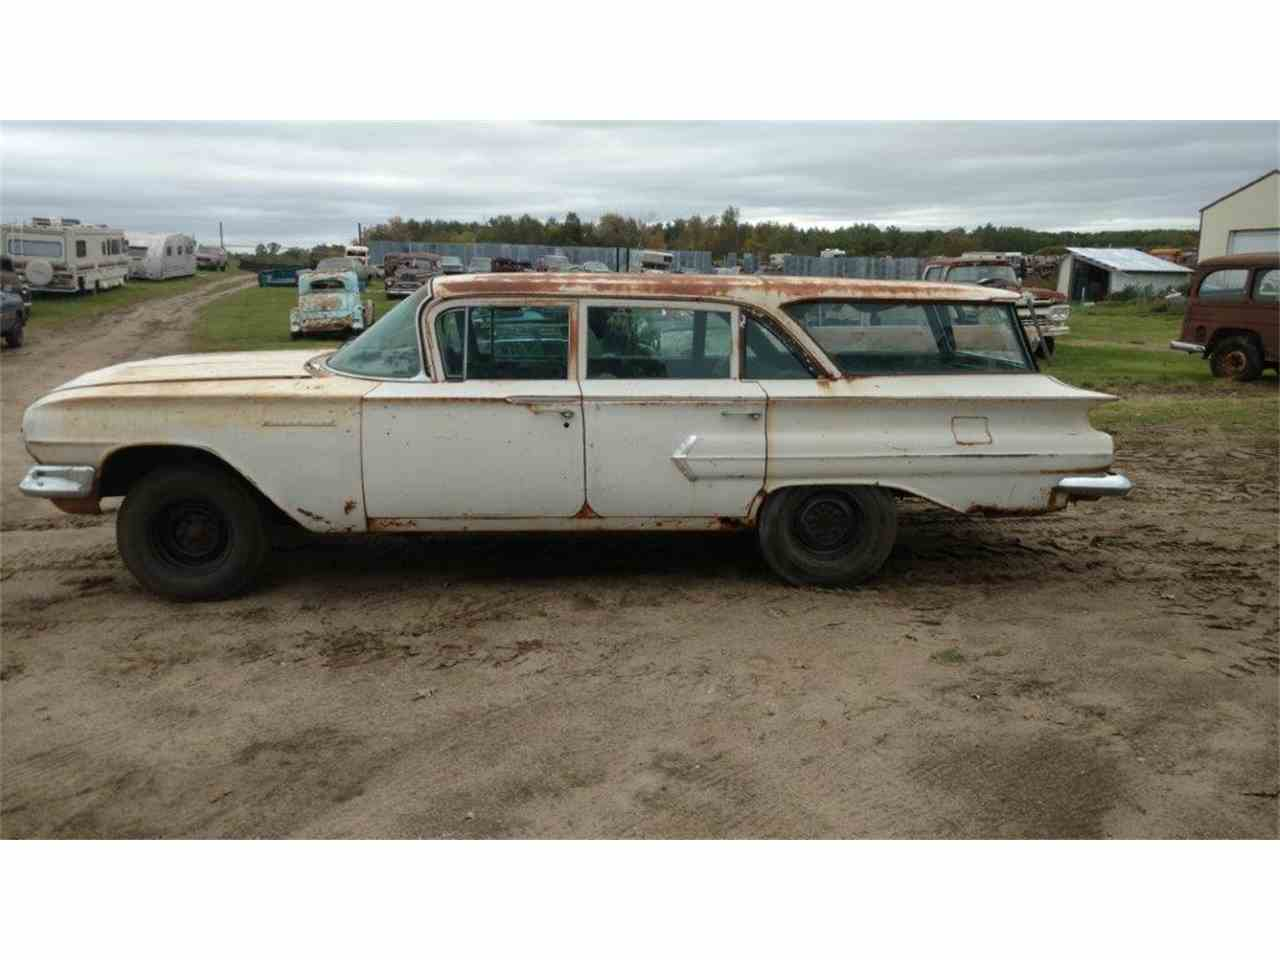 1960 chevrolet station wagon for sale for Nearest motor vehicle inspection station